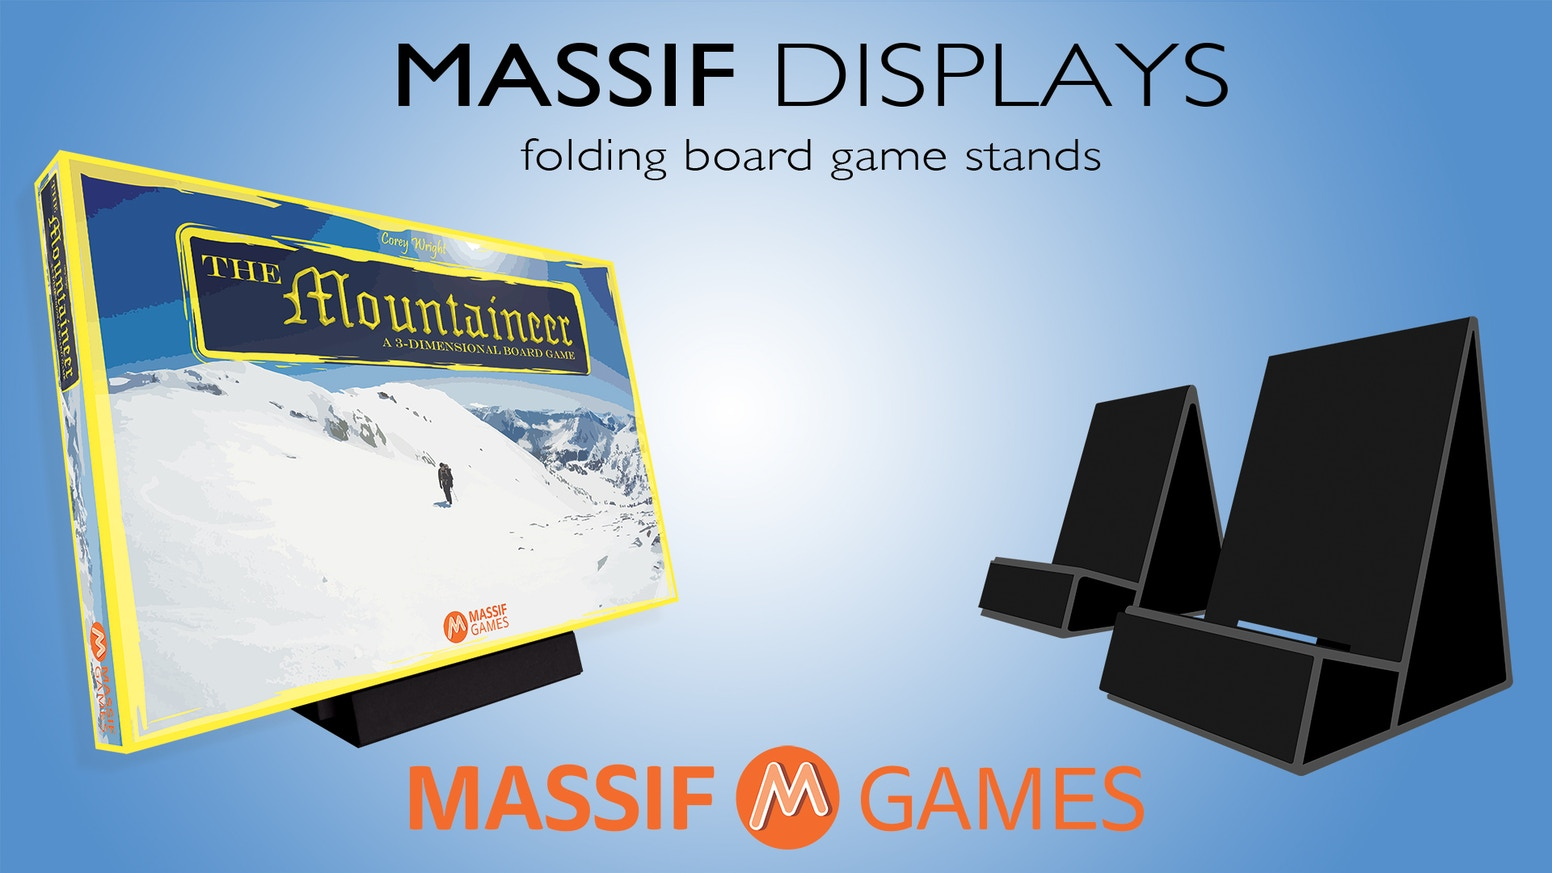 Massif Displays Folding Compact Board Game Stands By Corey Wright